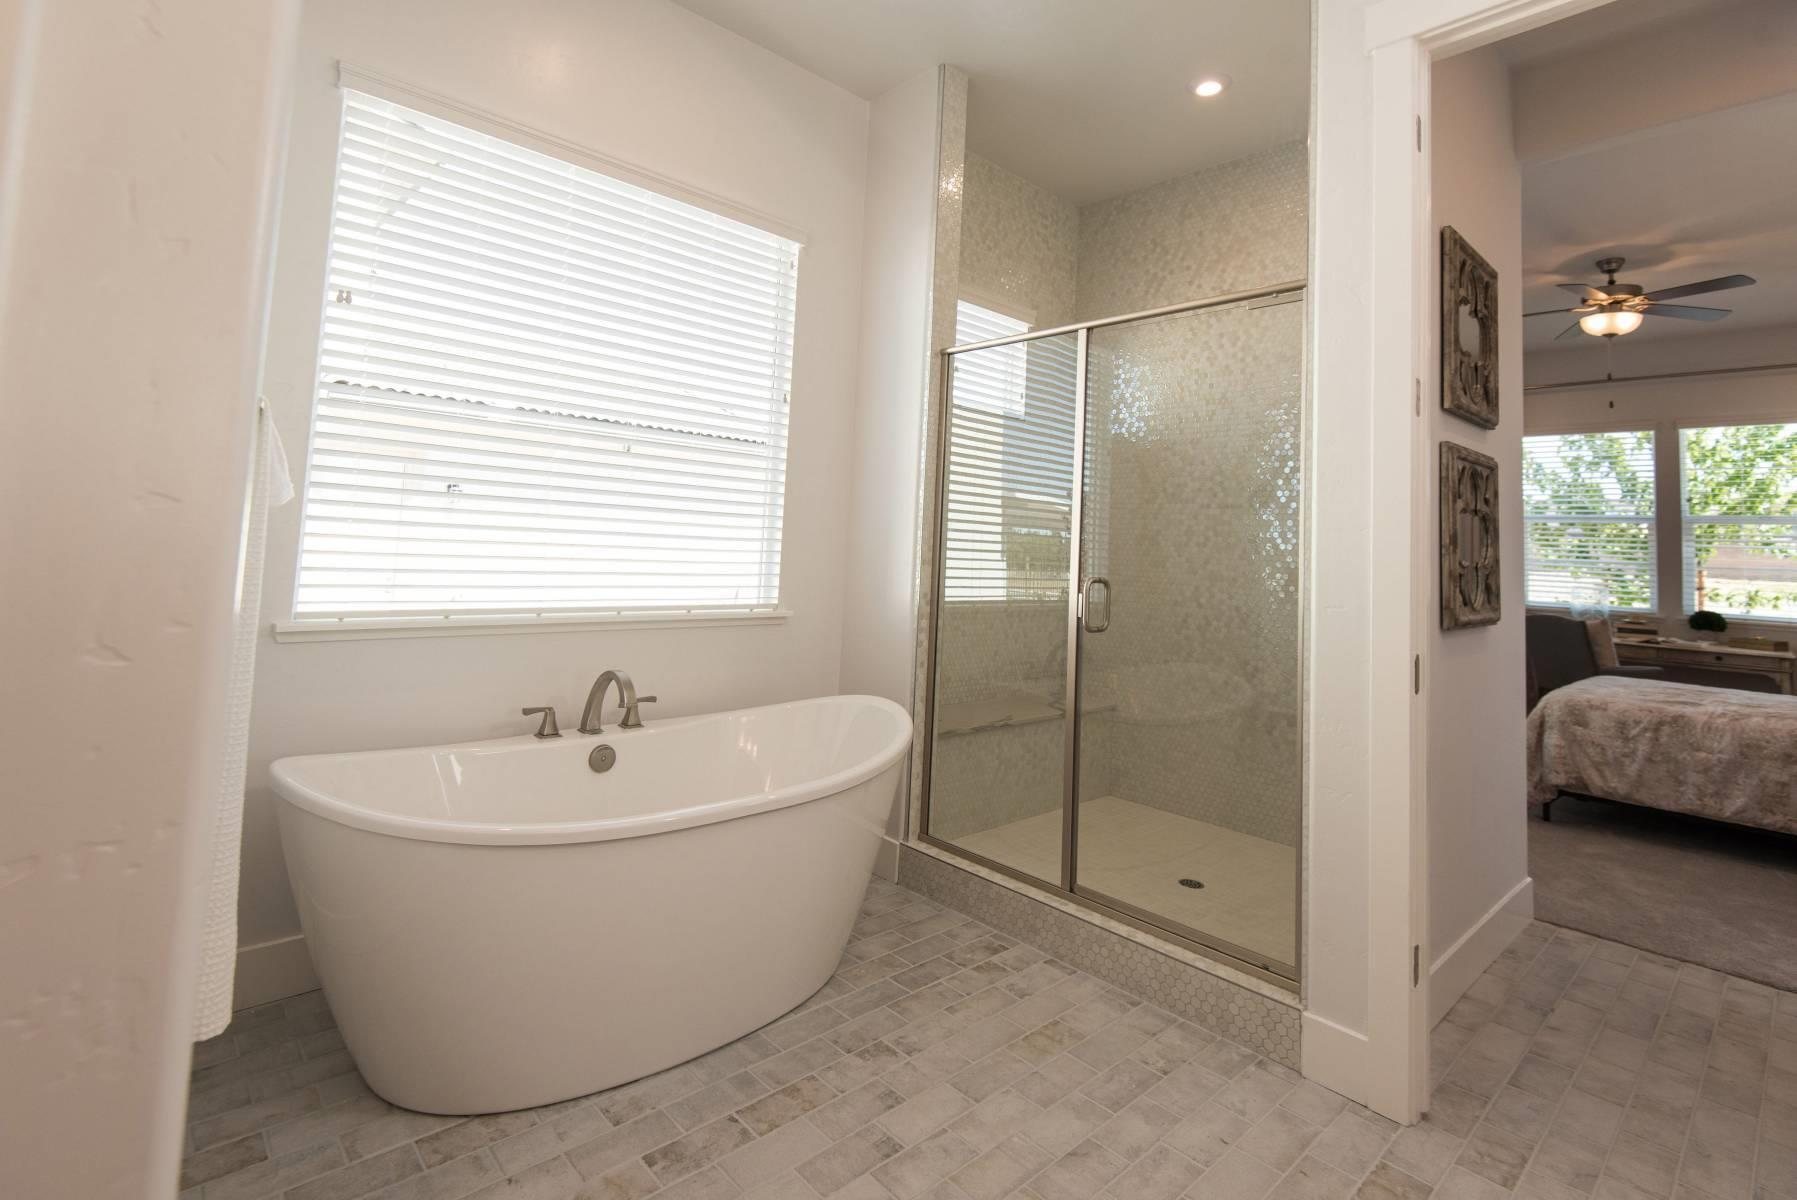 Bathroom featured in the Clover By Elliott Homes in Sacramento, CA